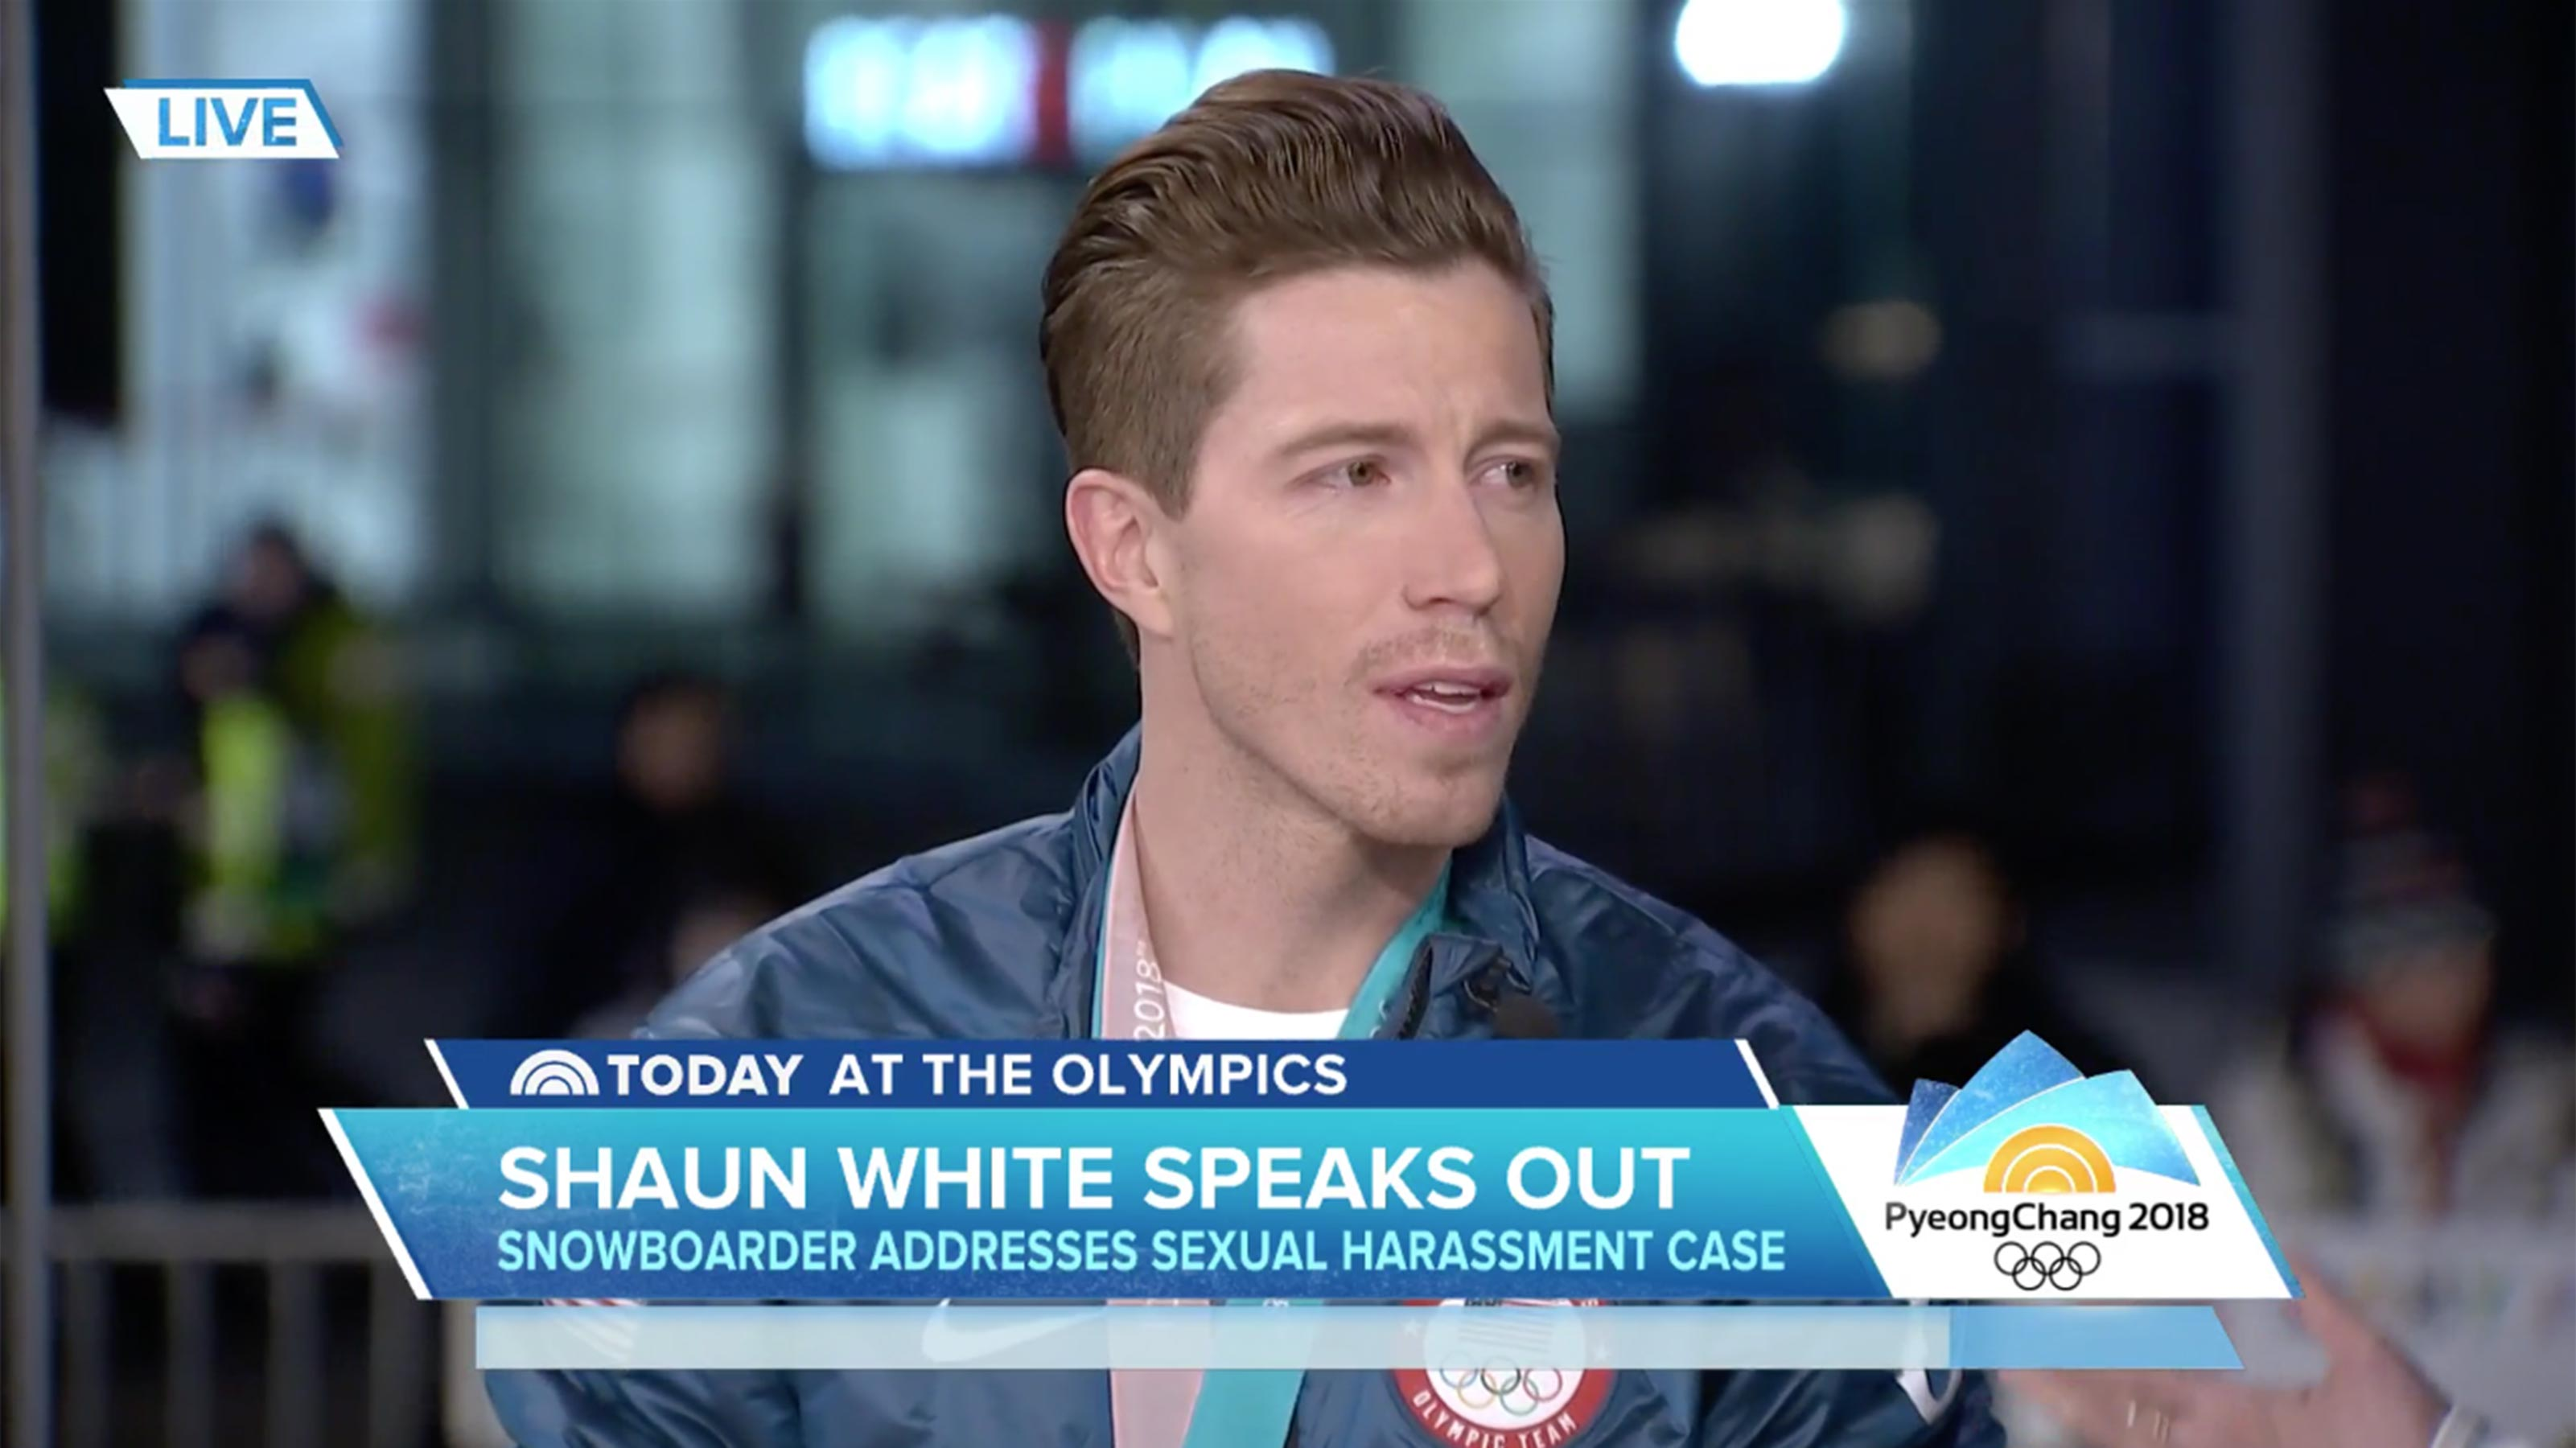 Shaun White lawsuit: Olympian says he's a changed person after allegations